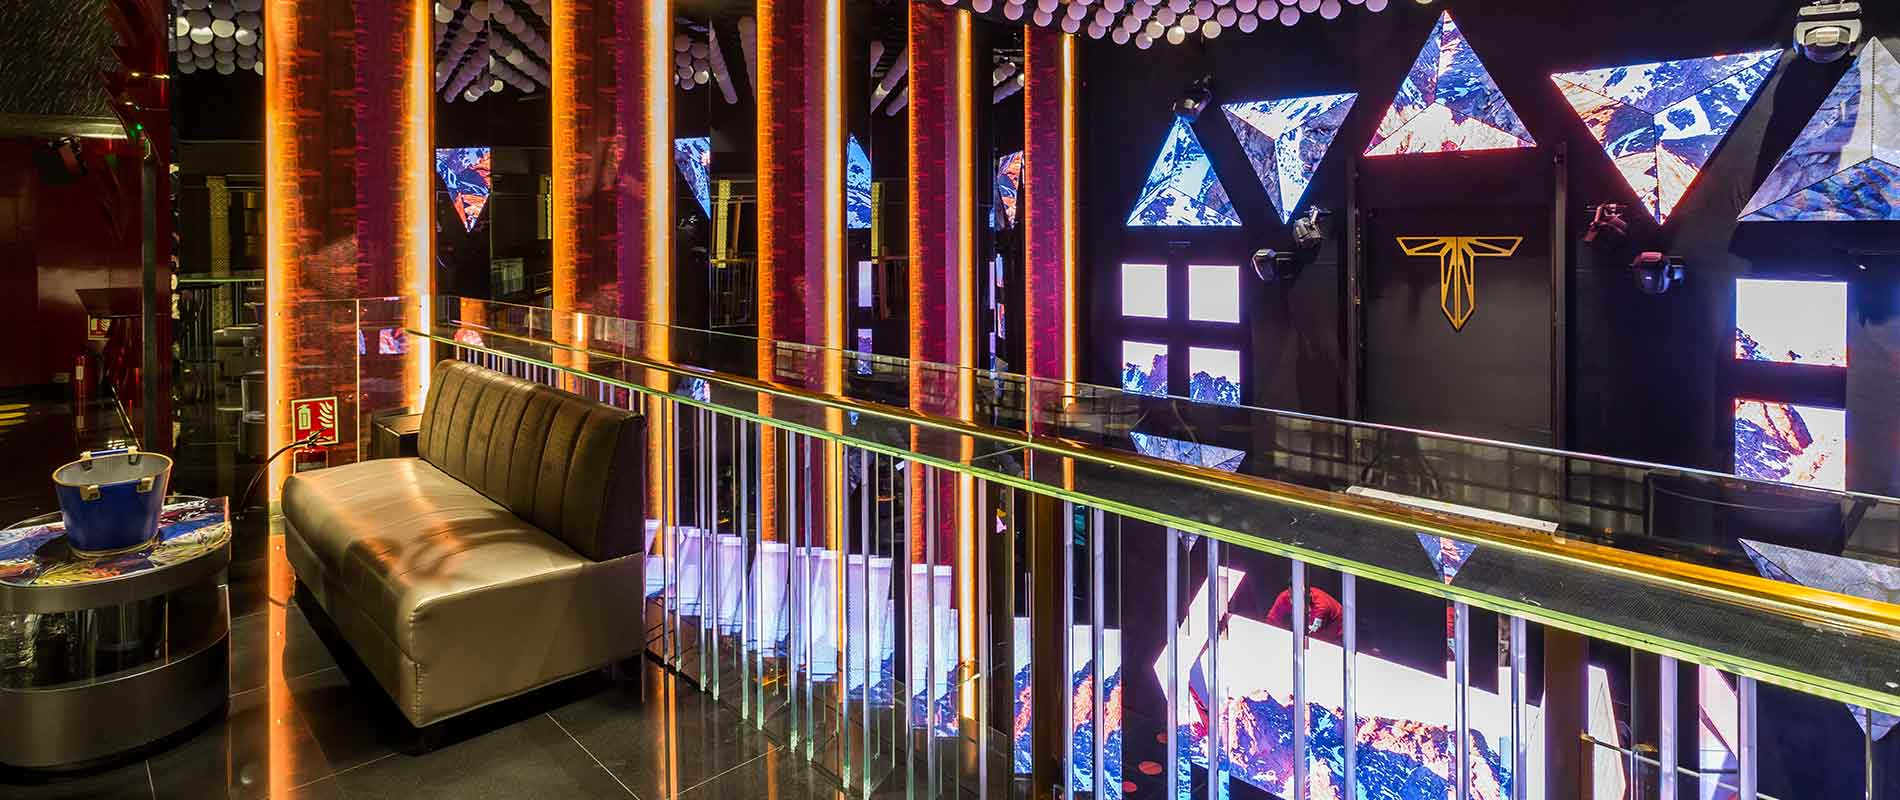 Trilogy 2.0 superClub interior design, best lounge club interior, 5 star hotel club, restaurant interior, Hospitality interior, architects, Bar interior designer Hospitality interior designers, India's best Hospitality architect, Bar interior design firm, Sumessh Menon, Trilogy Super Club 2.0., kinetic lighting design, singular dance club, Trilogy interior, Trilogy club, Club interior, Club interior designer, Lounge interior, Hotel interior, Sumessh Menon & Associates, Best Restaurant Interior Designers, Top Interior designer, Indian Interior designers, Best Restaurant architects in India, restaurant interior design firm, Modern Interior design, Contemporary interior designers, Best interior designers, best Indian architects, restaurant interiors, Mumbai restaurants, Theme restaurant, Mumbai best restaurant, creative restaurant interior, best restaurant interiors, Interior ideas, Best bar designers, Interior design company, Architects, Rooftop architects, Interior, Interior designer